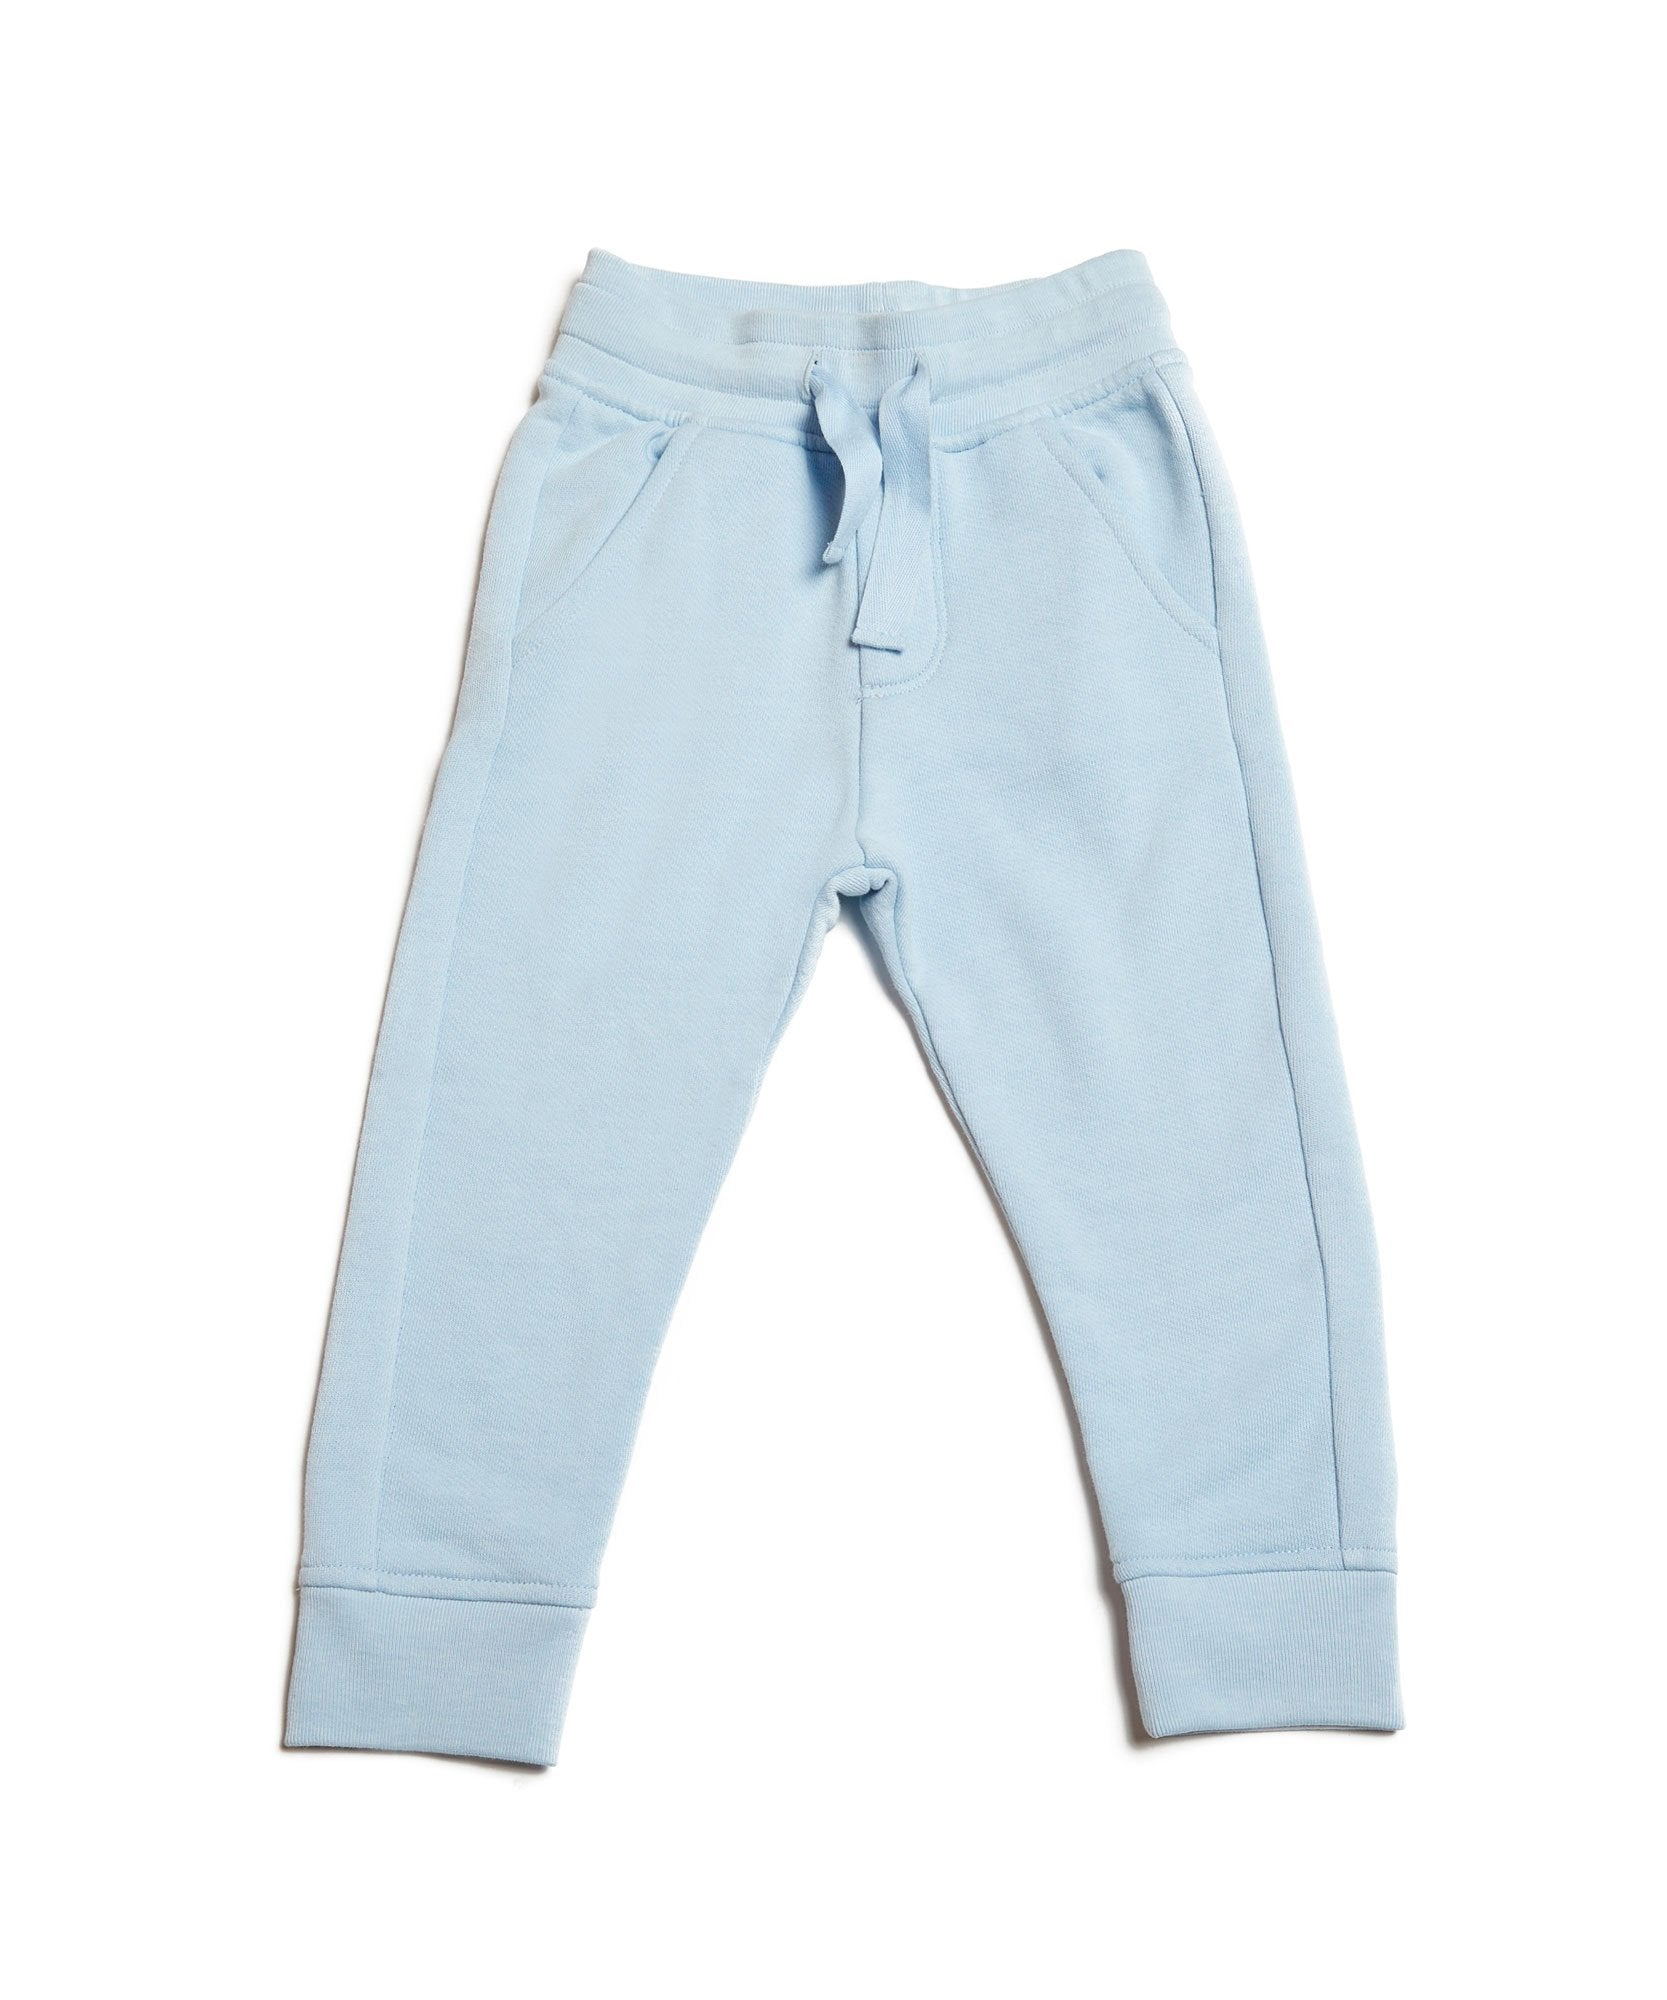 Powder Blue Kids French Terry Sweatpants - Kid's Cotton Sweatpants by ATM Anthony Thomas Melillo